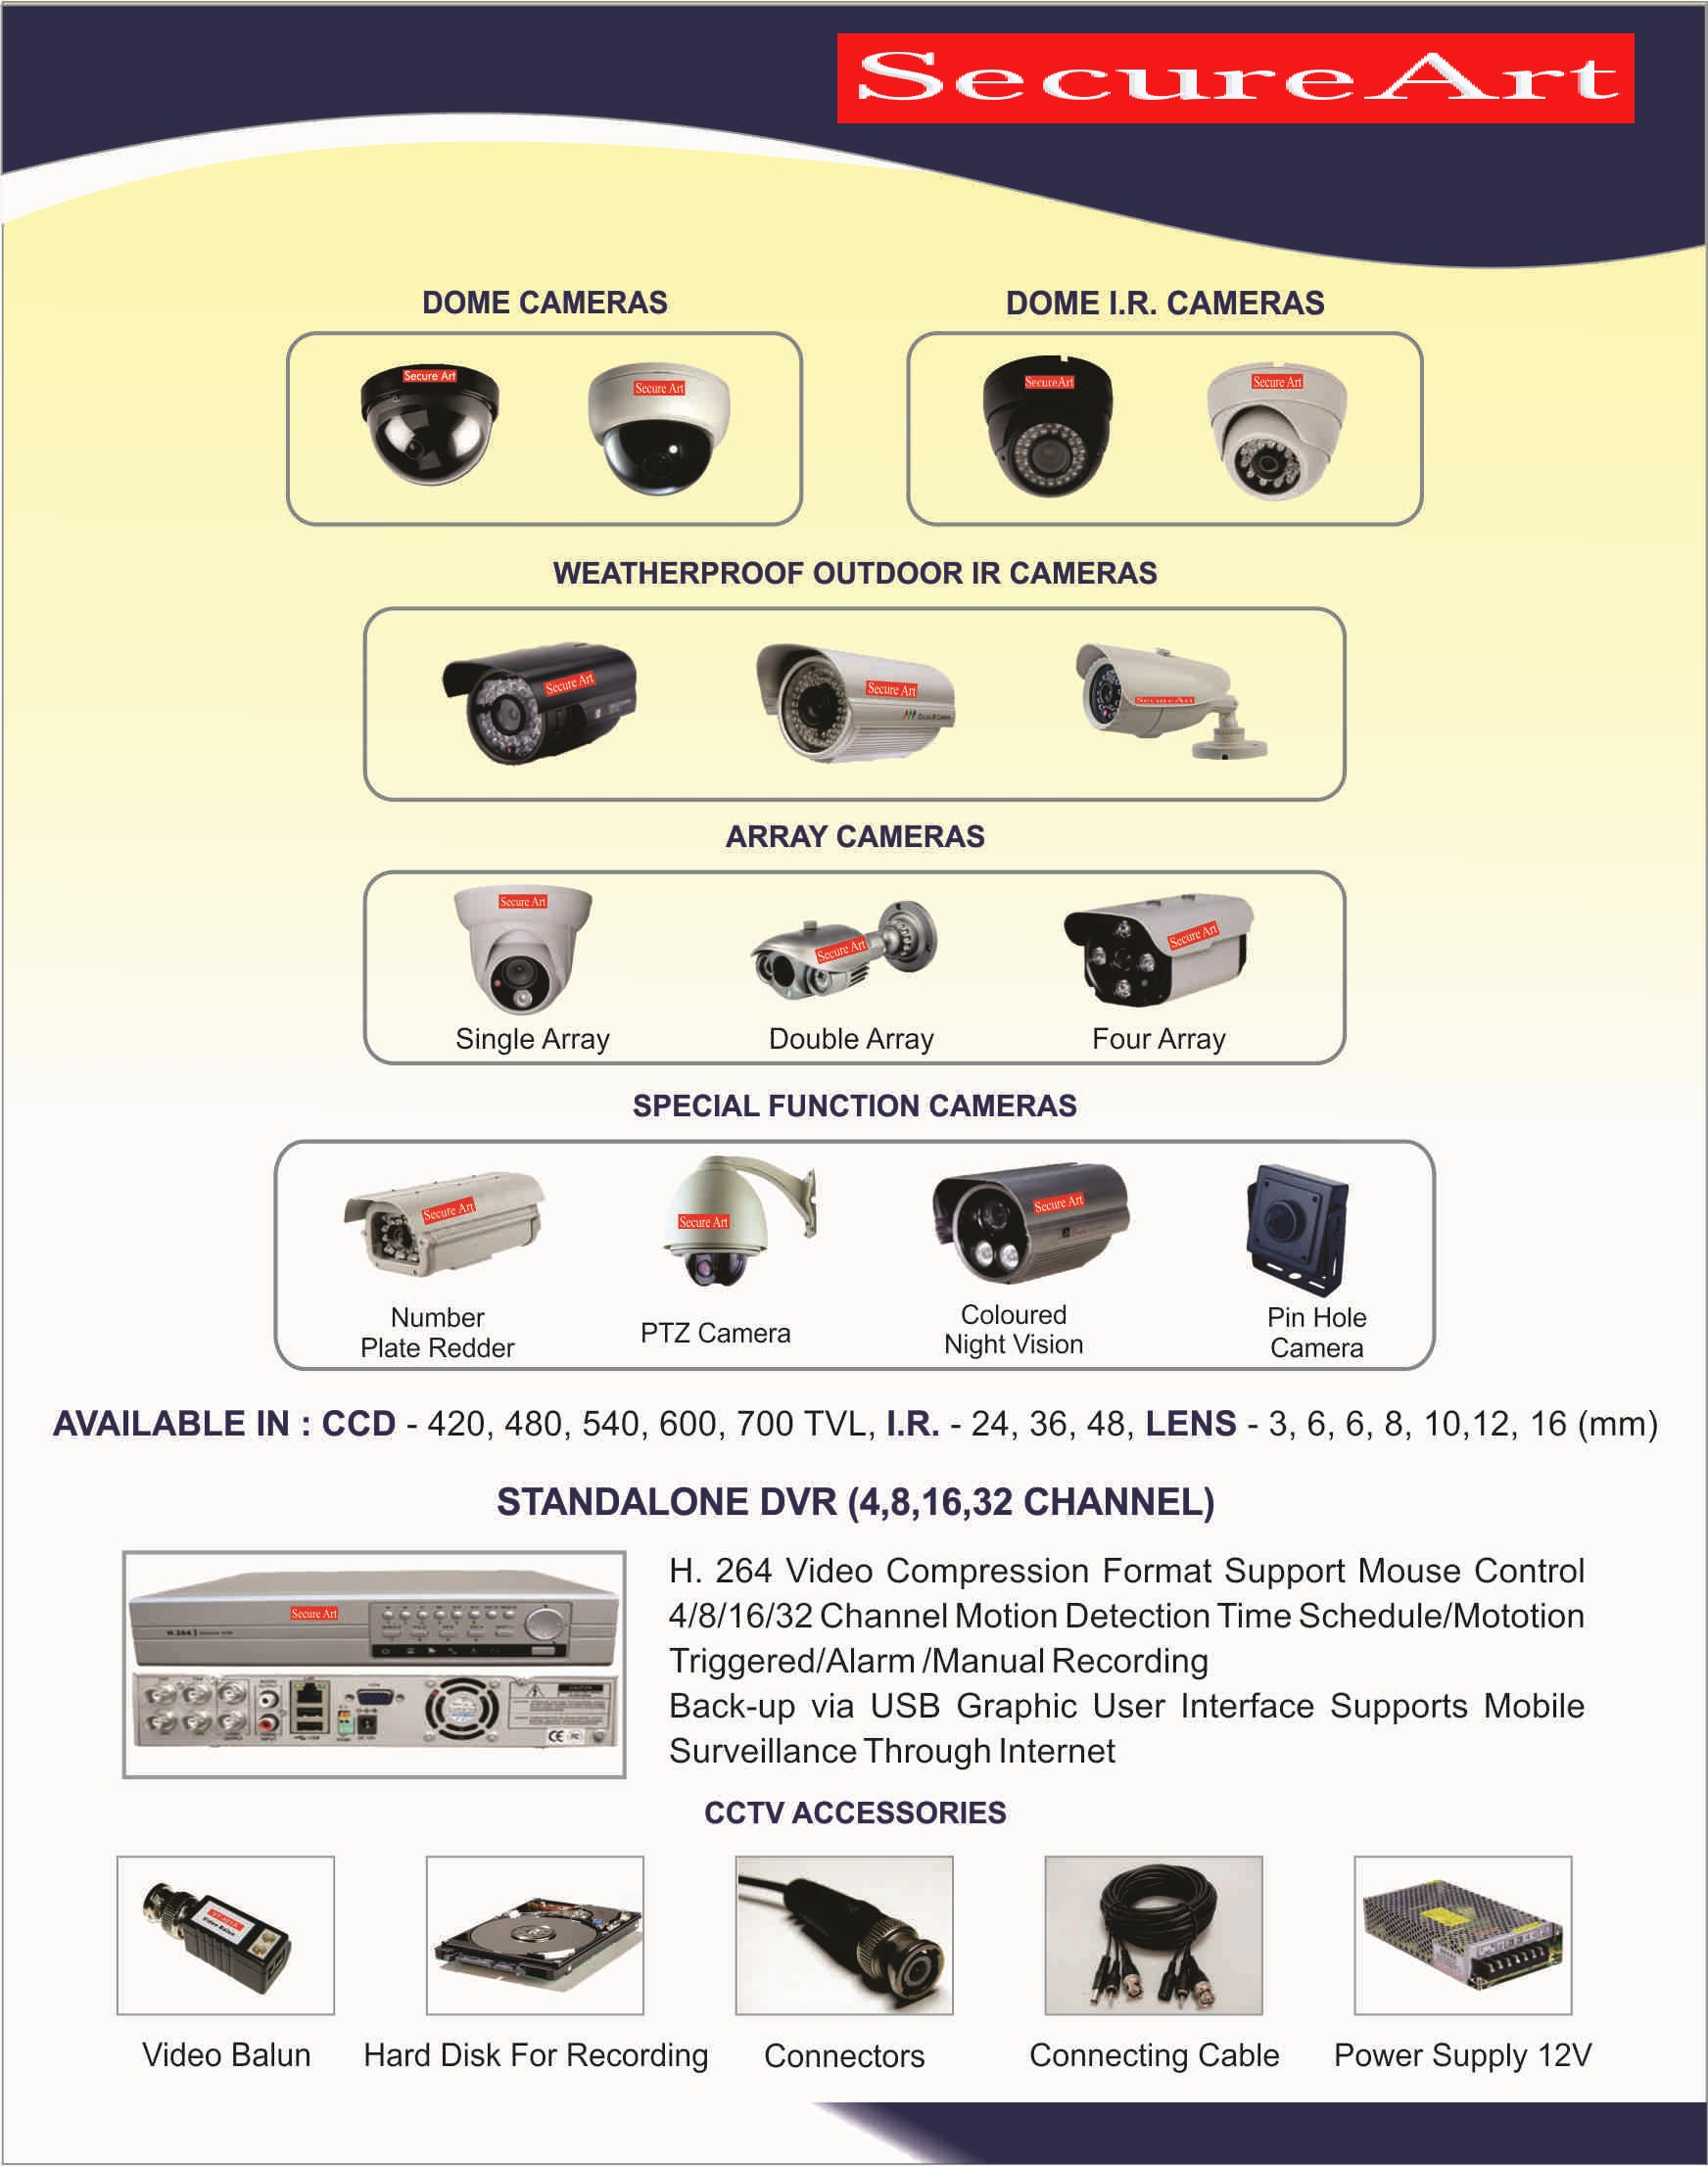 secure art cctv brochure